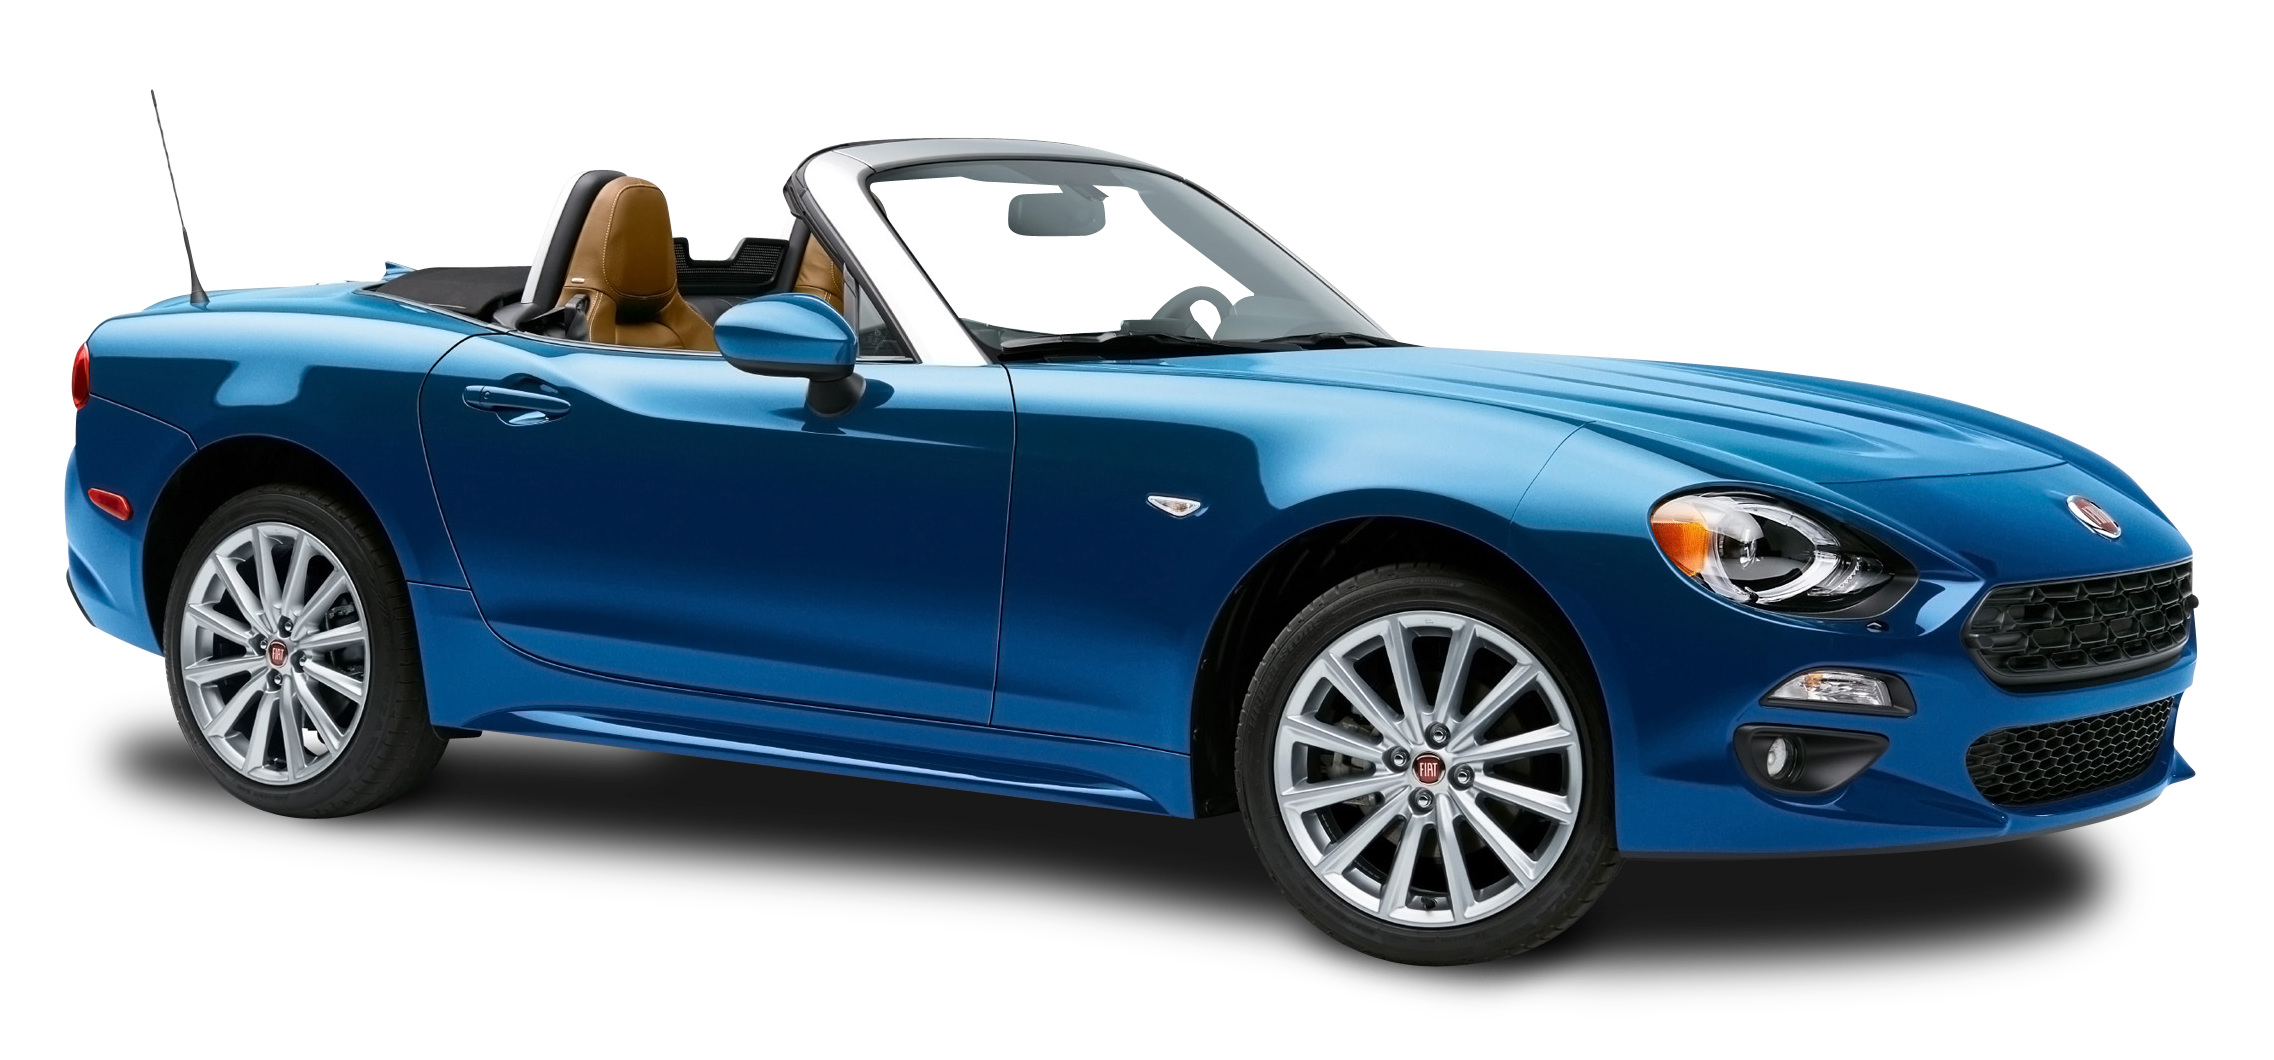 Blue Fiat 124 Spider Car PNG Image.